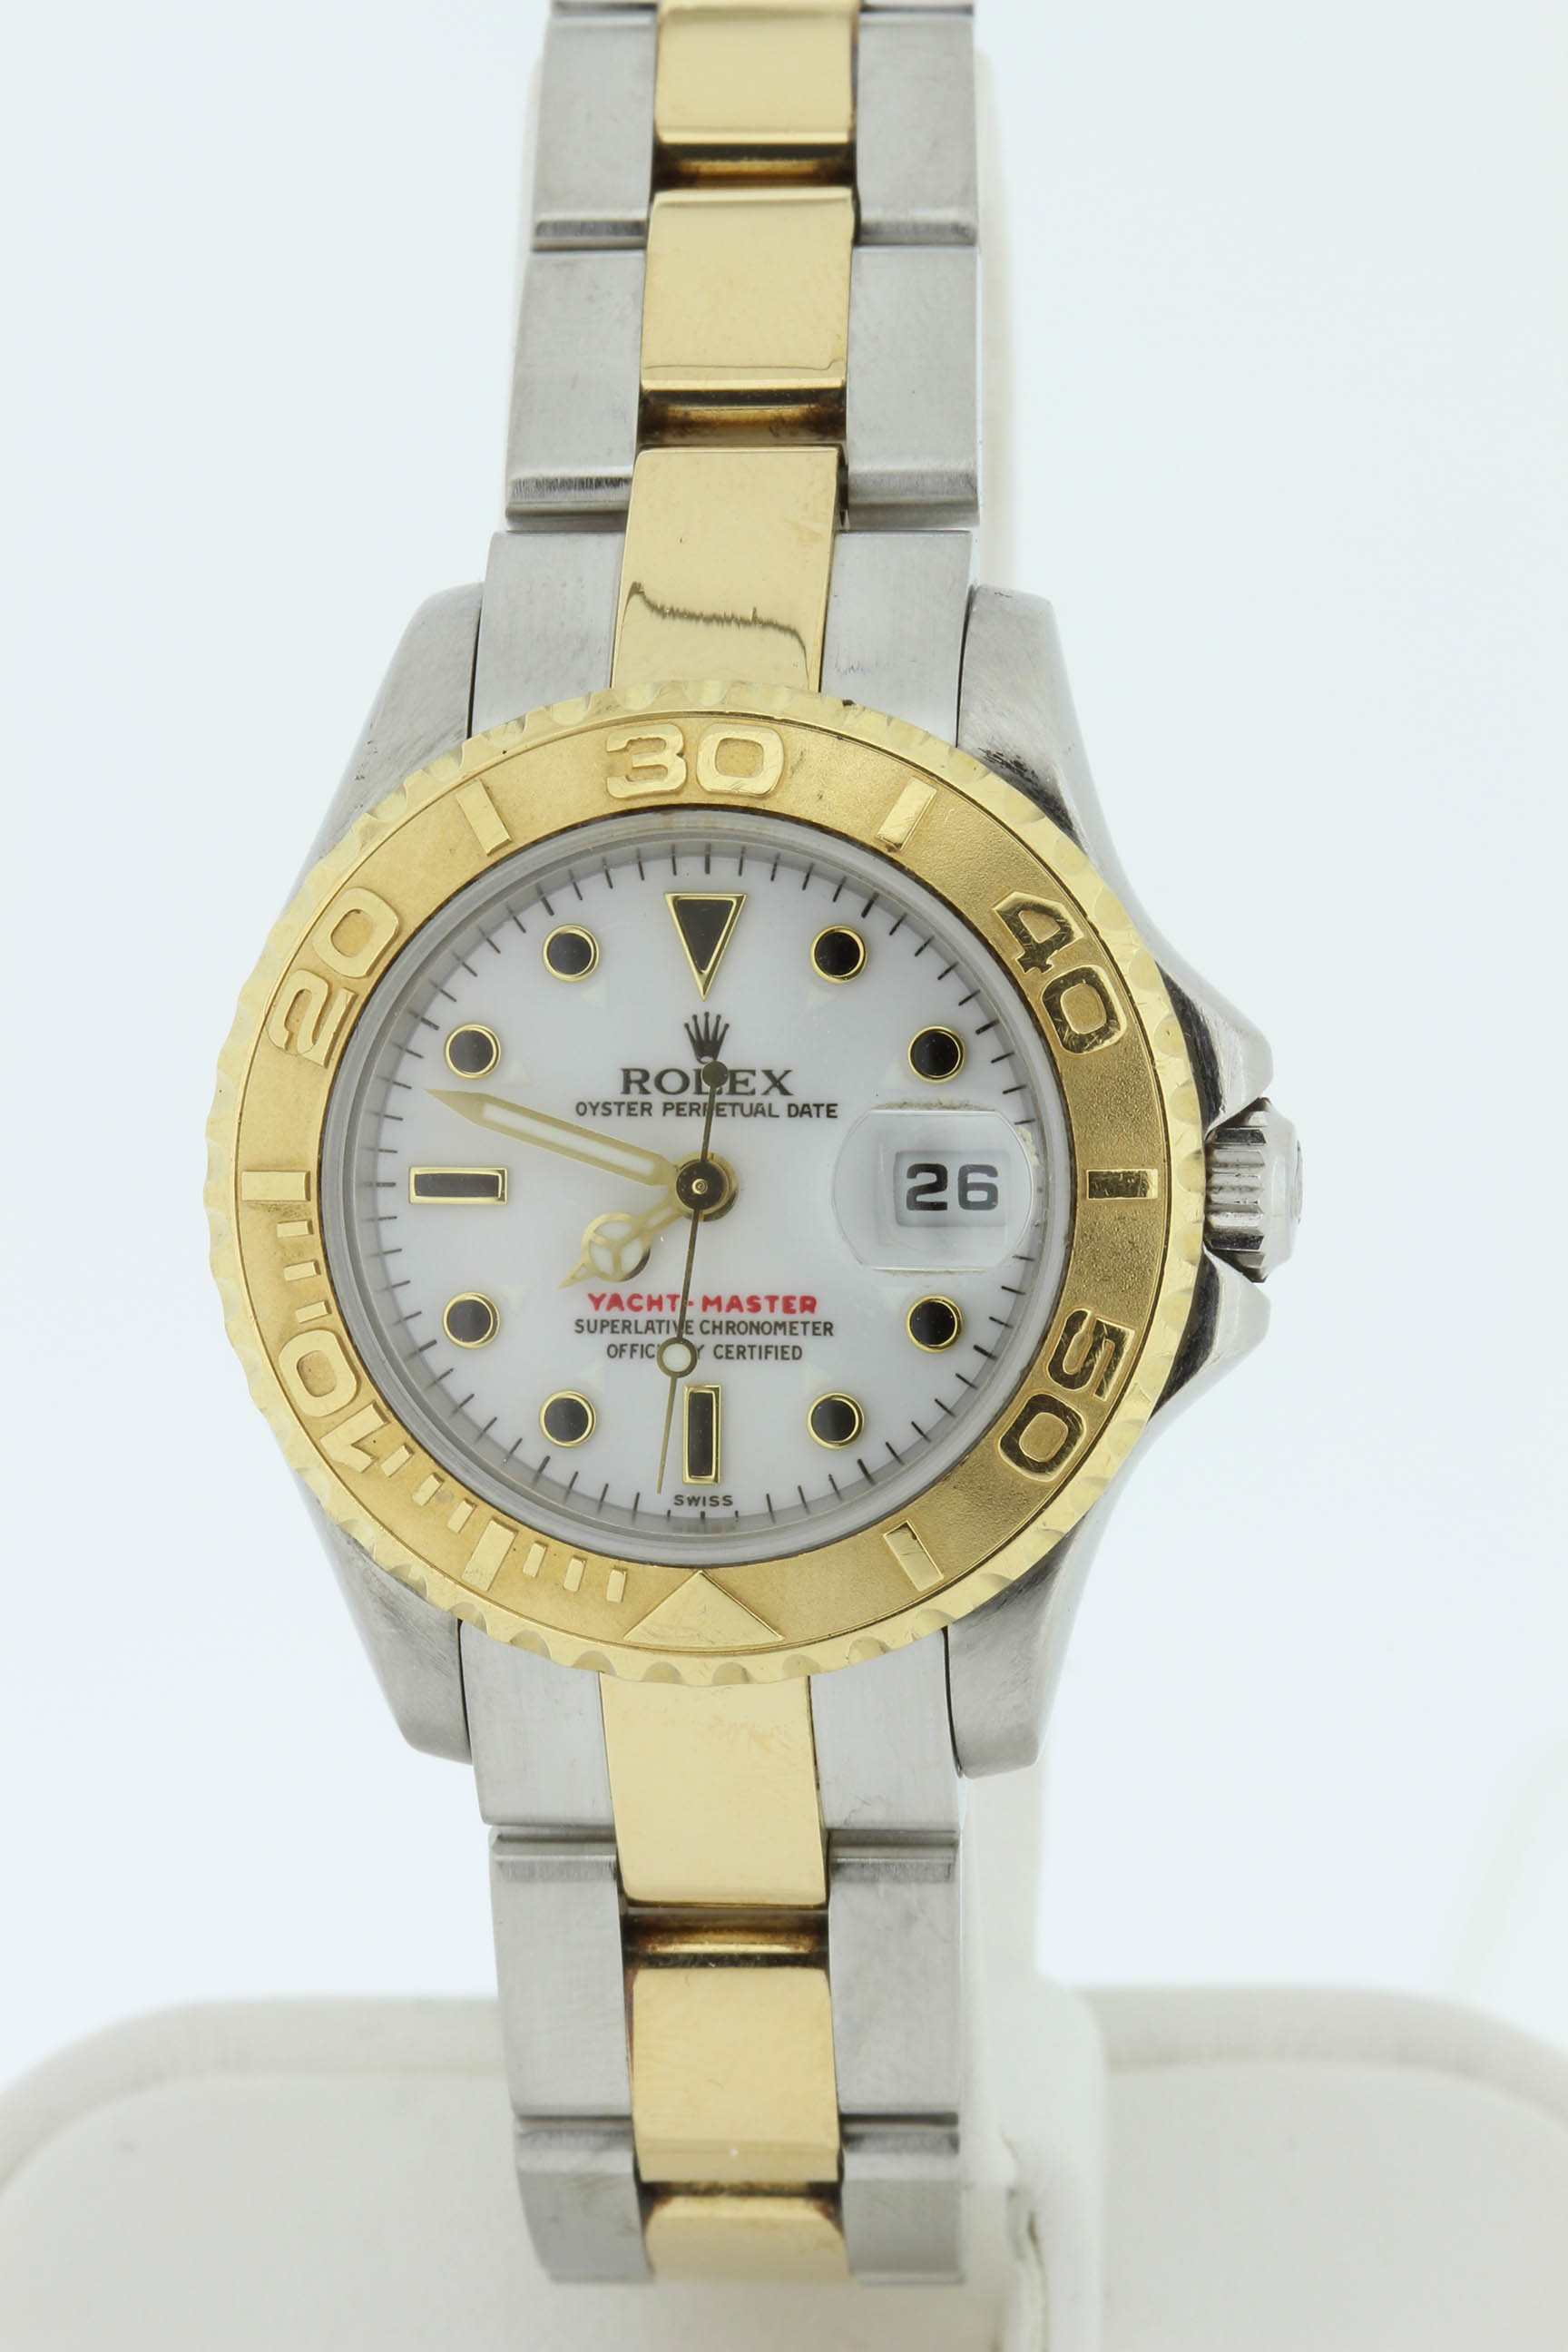 Ladies 18k & Stainless Yachtmaster - $6500